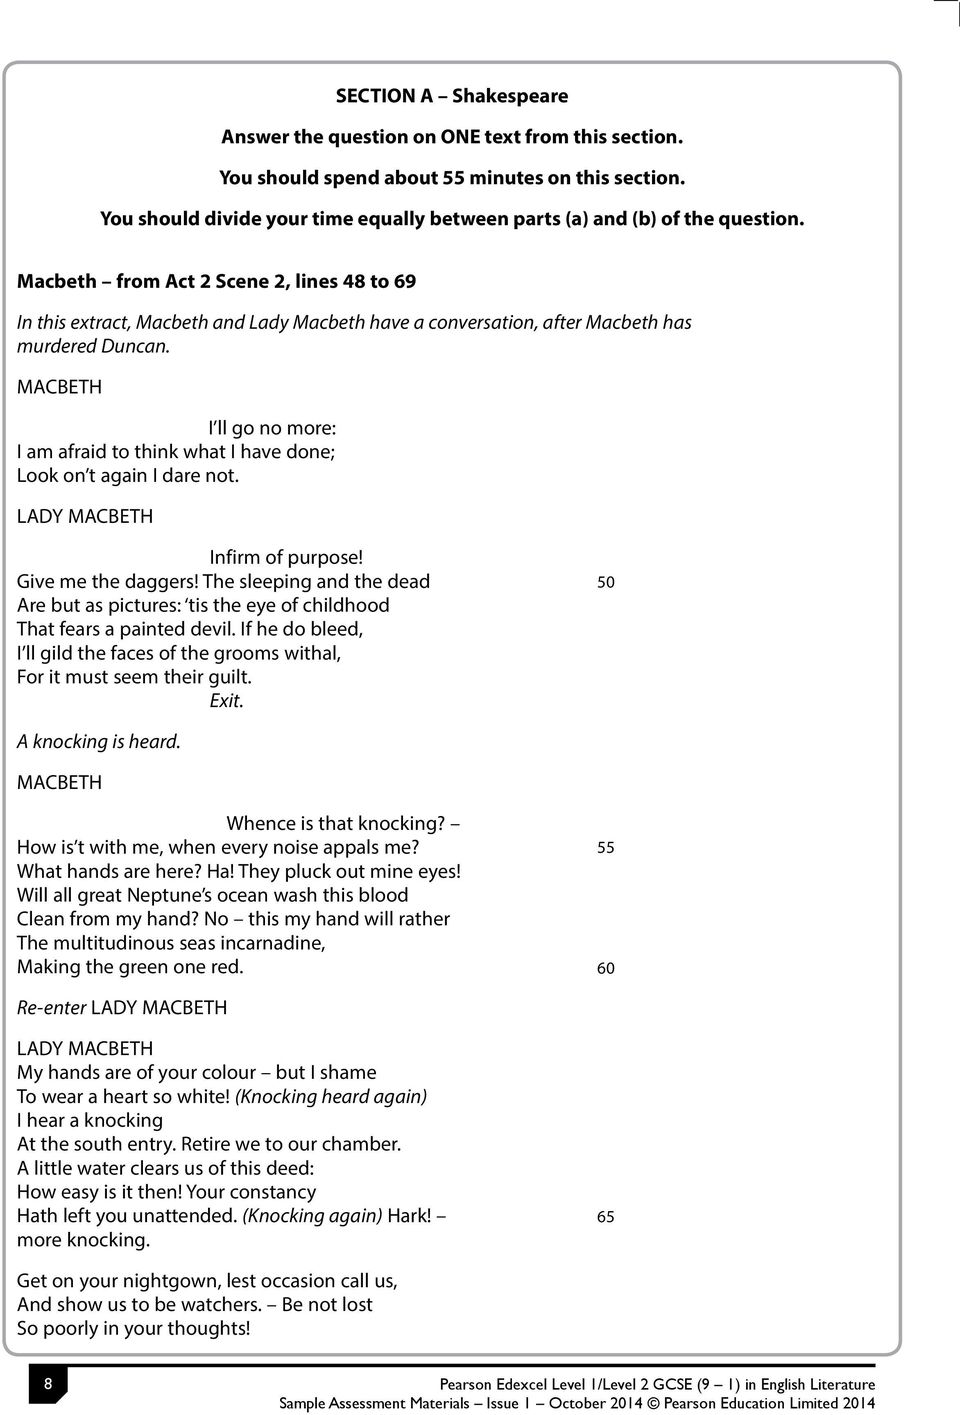 gcse 9 1 english literature exemplars pdf macbeth from act 2 scene 2 lines 48 to 69 in this extract macbeth